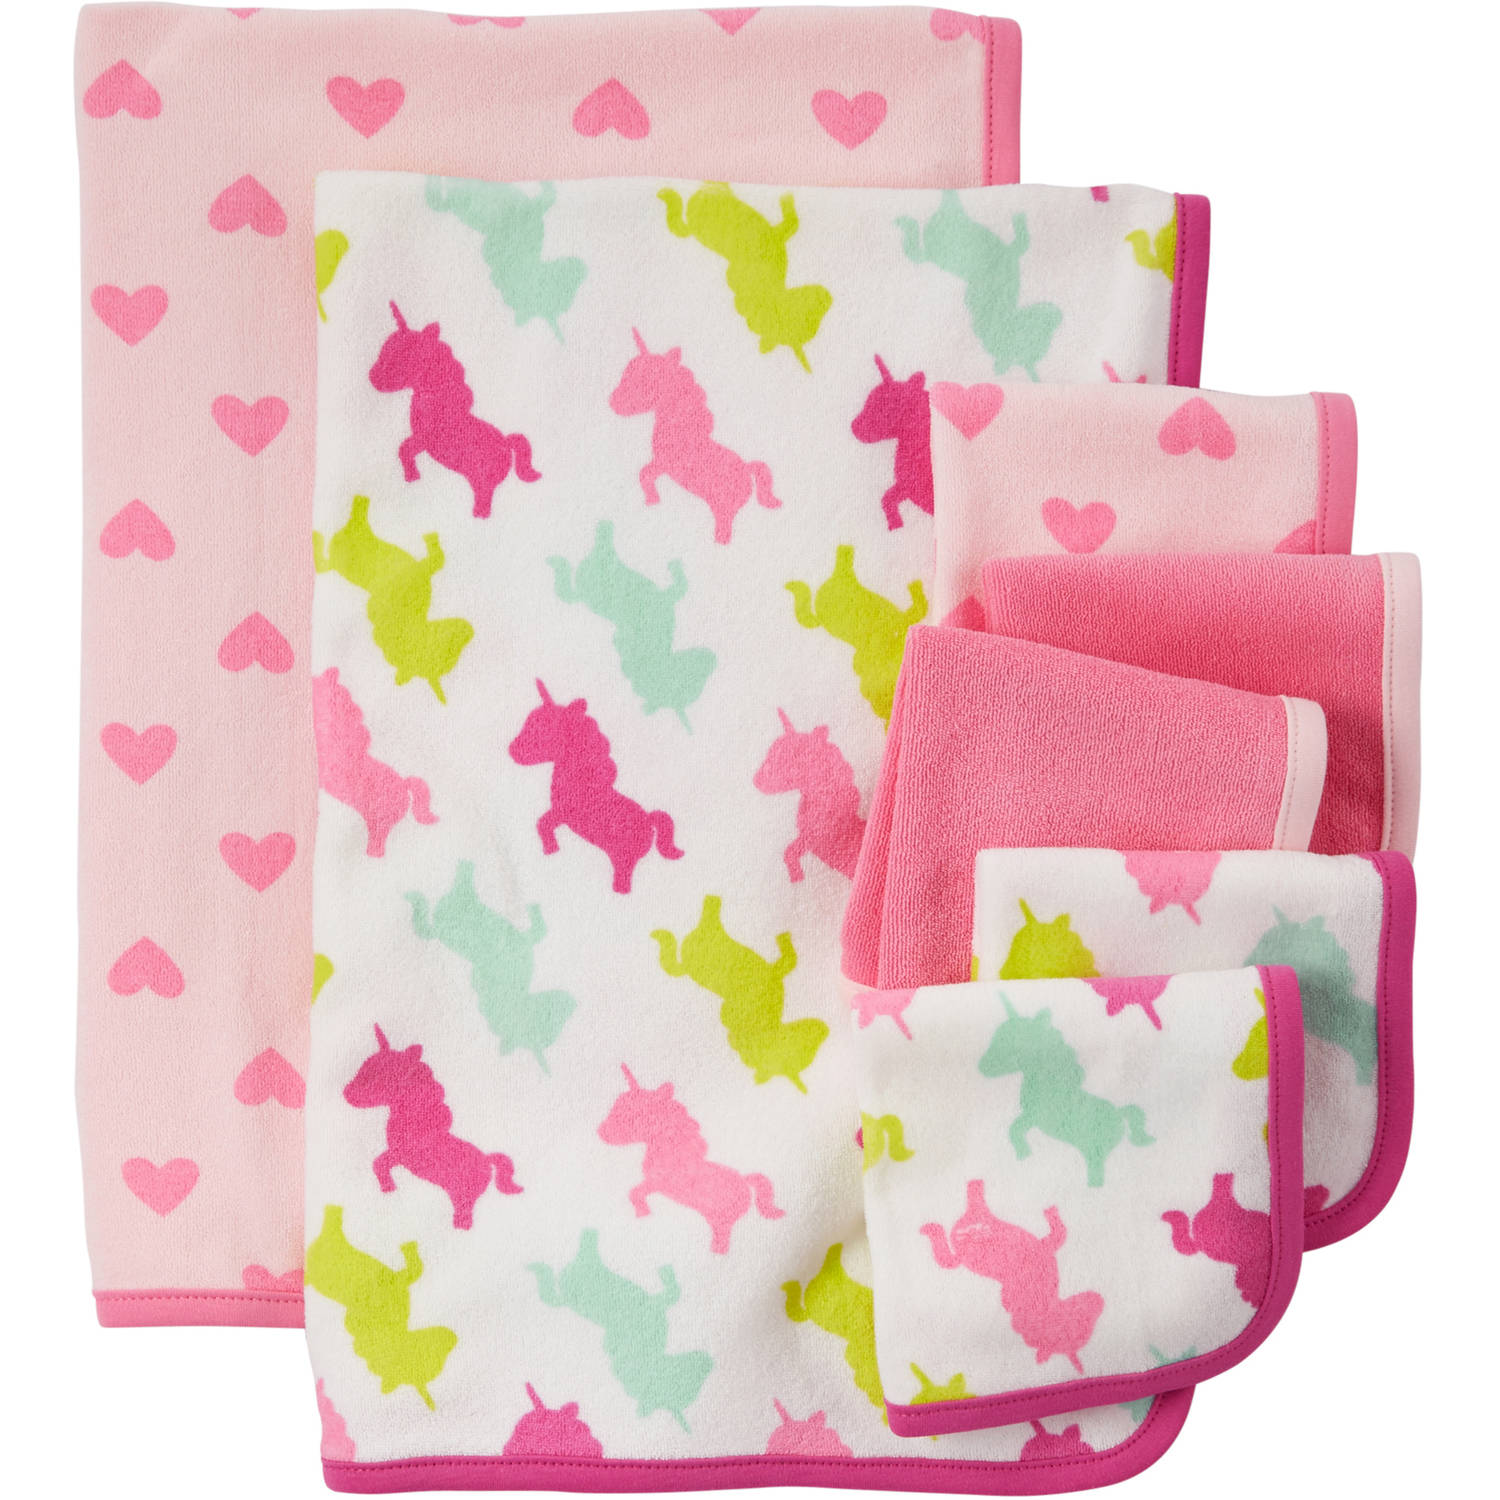 Child Of Mine Made By Carter's Newborn Baby Girl Washcloth And Towel Set, 7 Pack